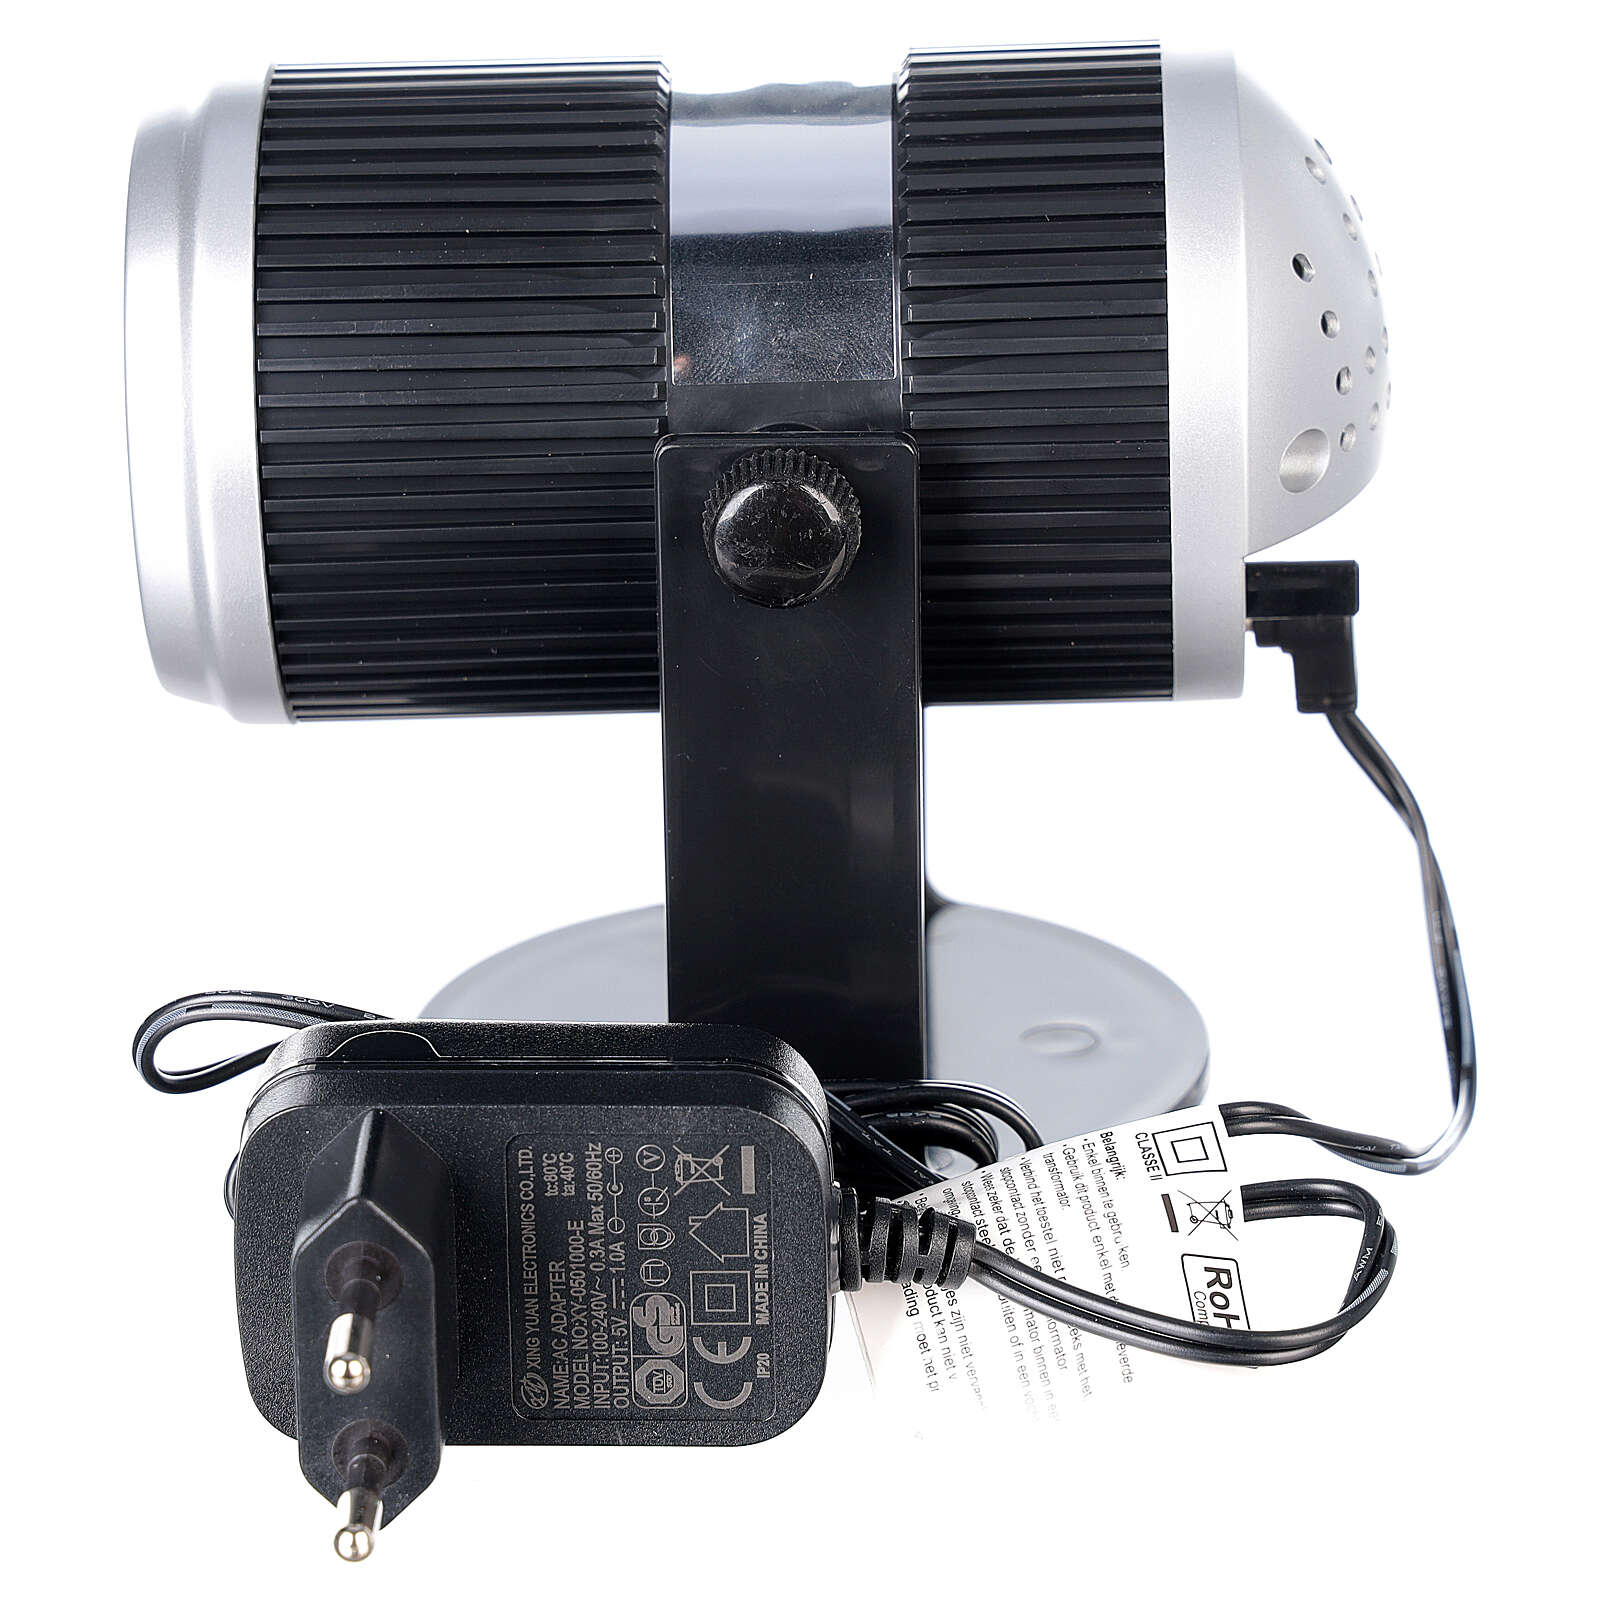 STOCK LED light projector multicolor Christmas images with adaptor 3